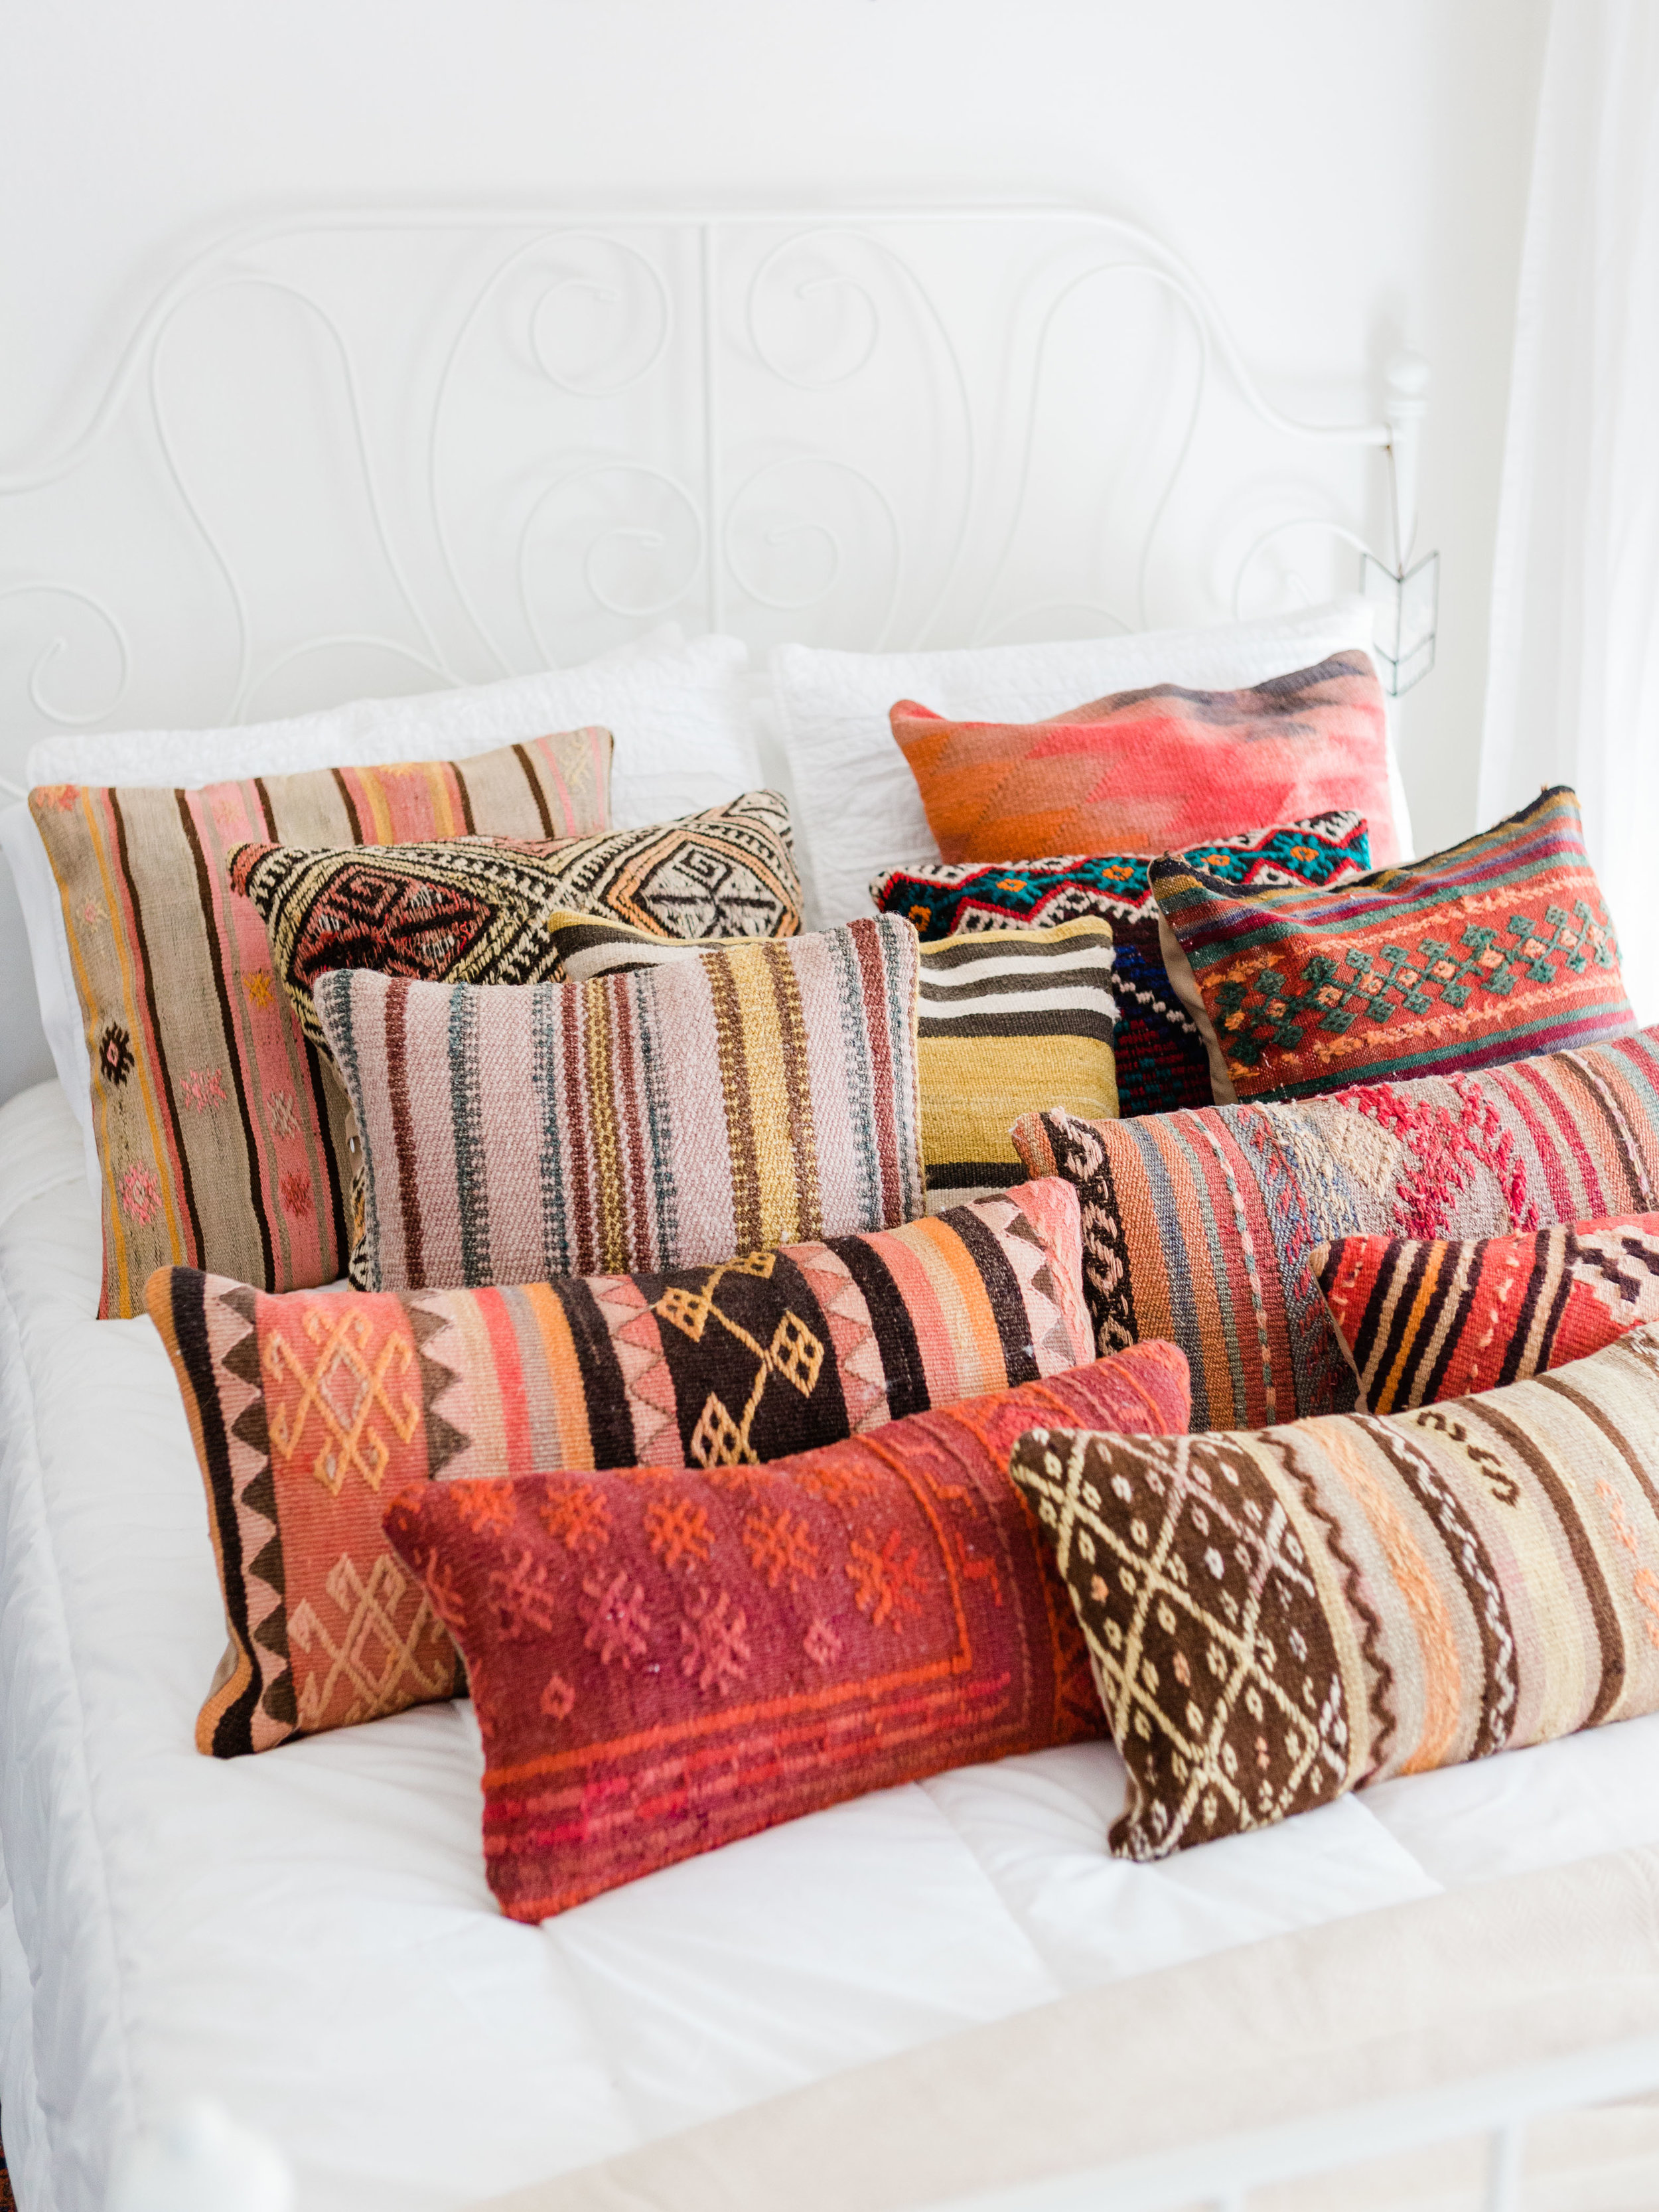 Kilim pillow covers from Turkey at Foraged Home